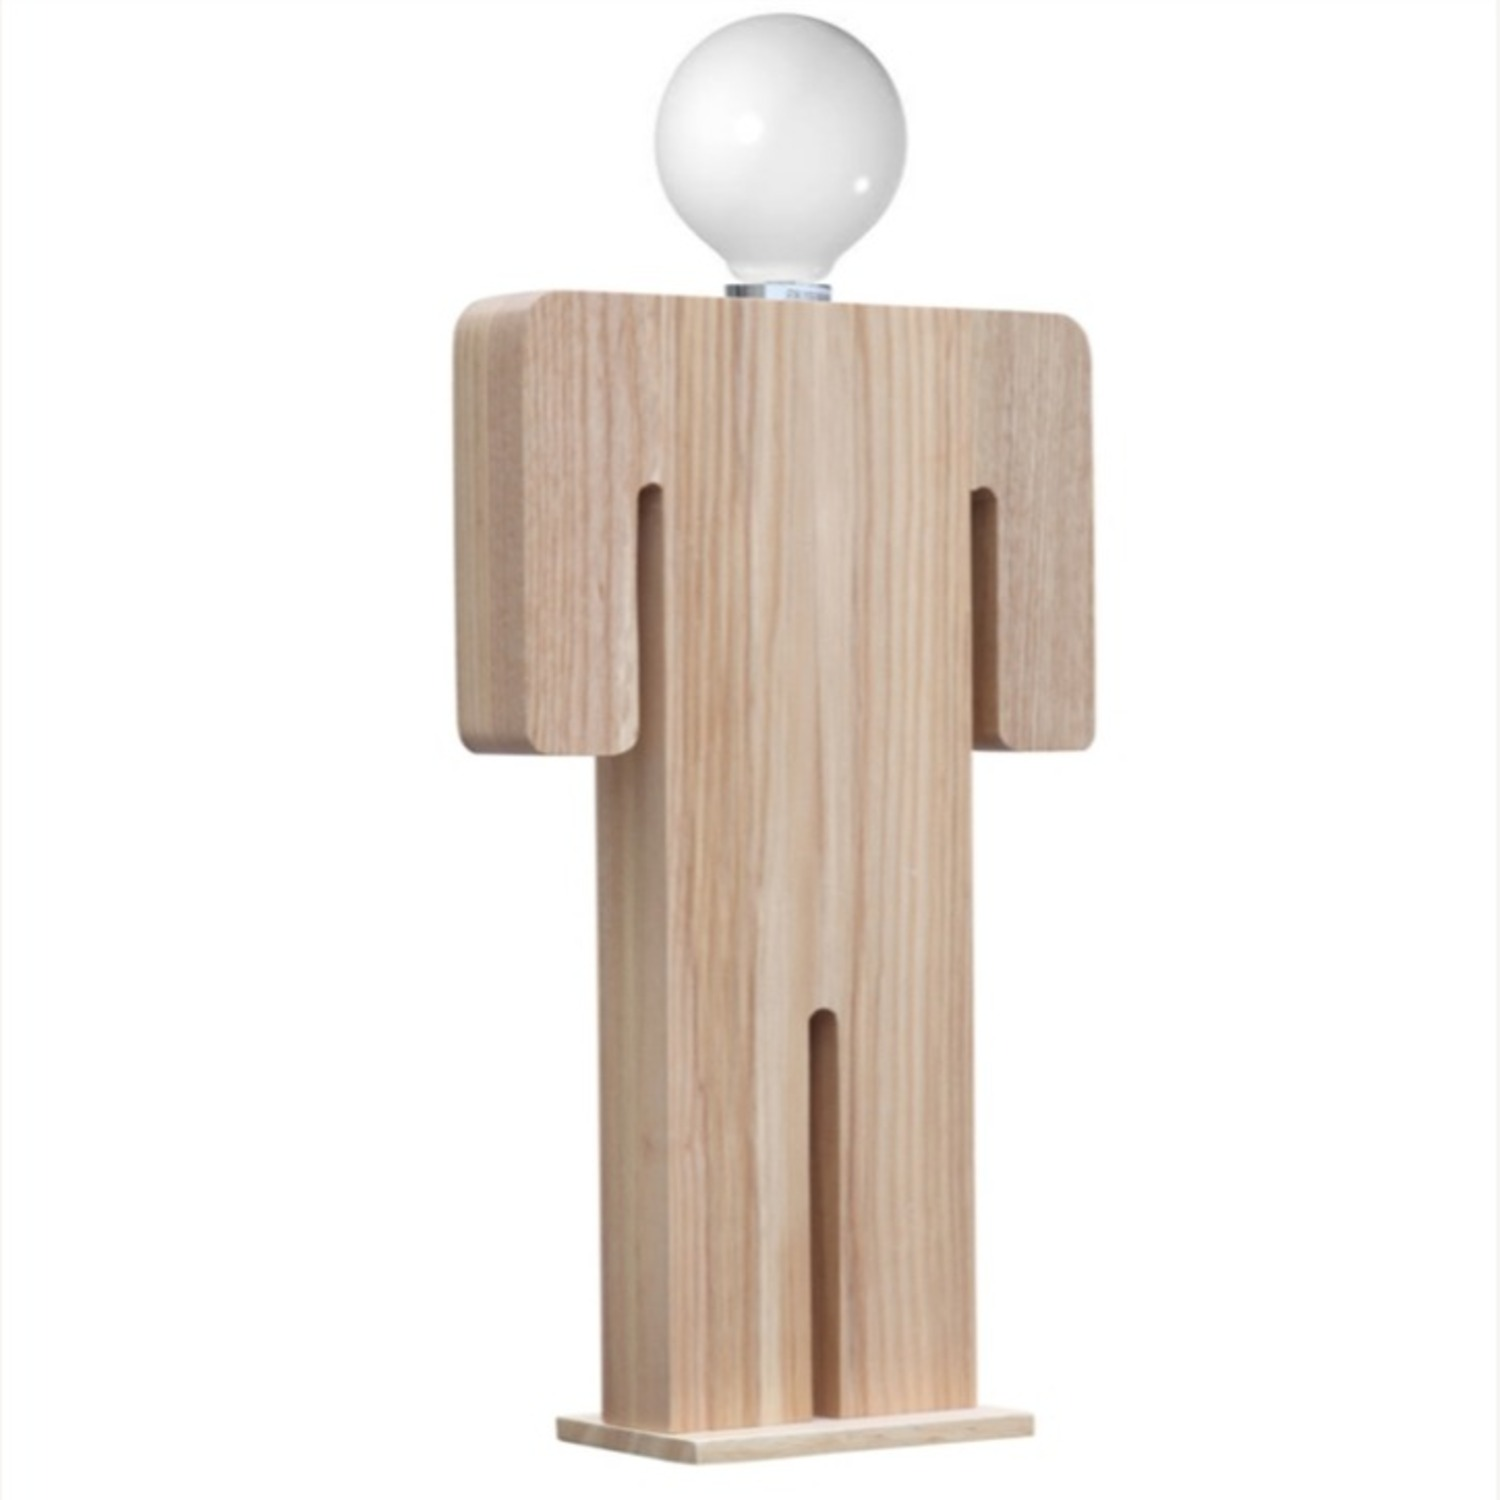 Table Lamp In Natural Wood W/ Male Person Design - image-1